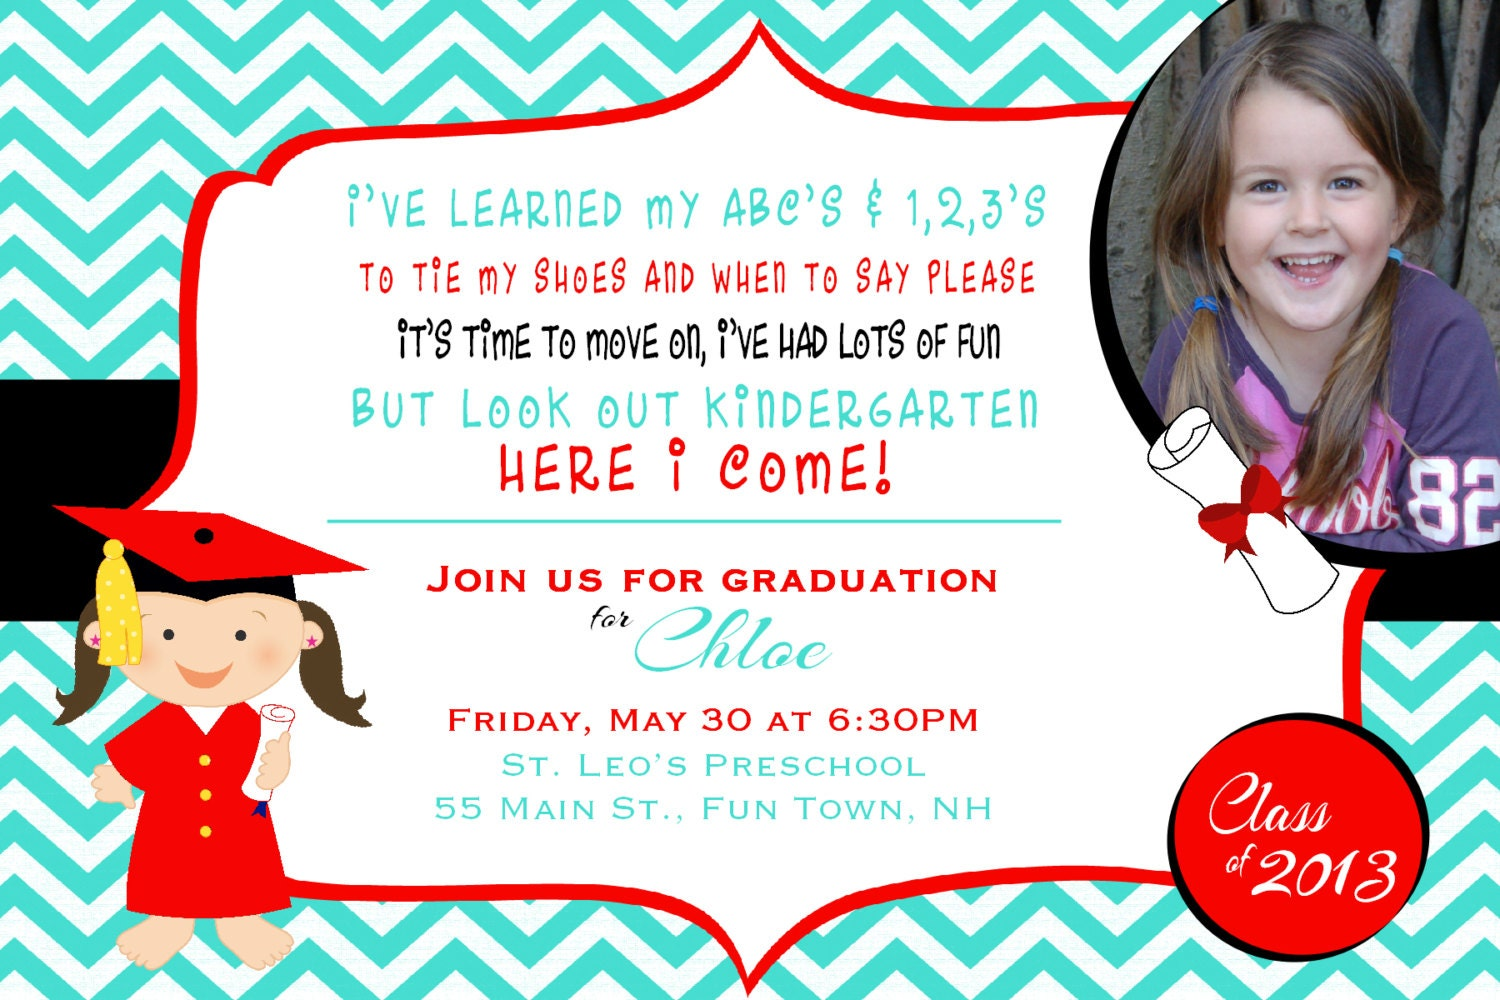 Preschool Graduation Invitations is one of our best ideas you might choose for invitation design